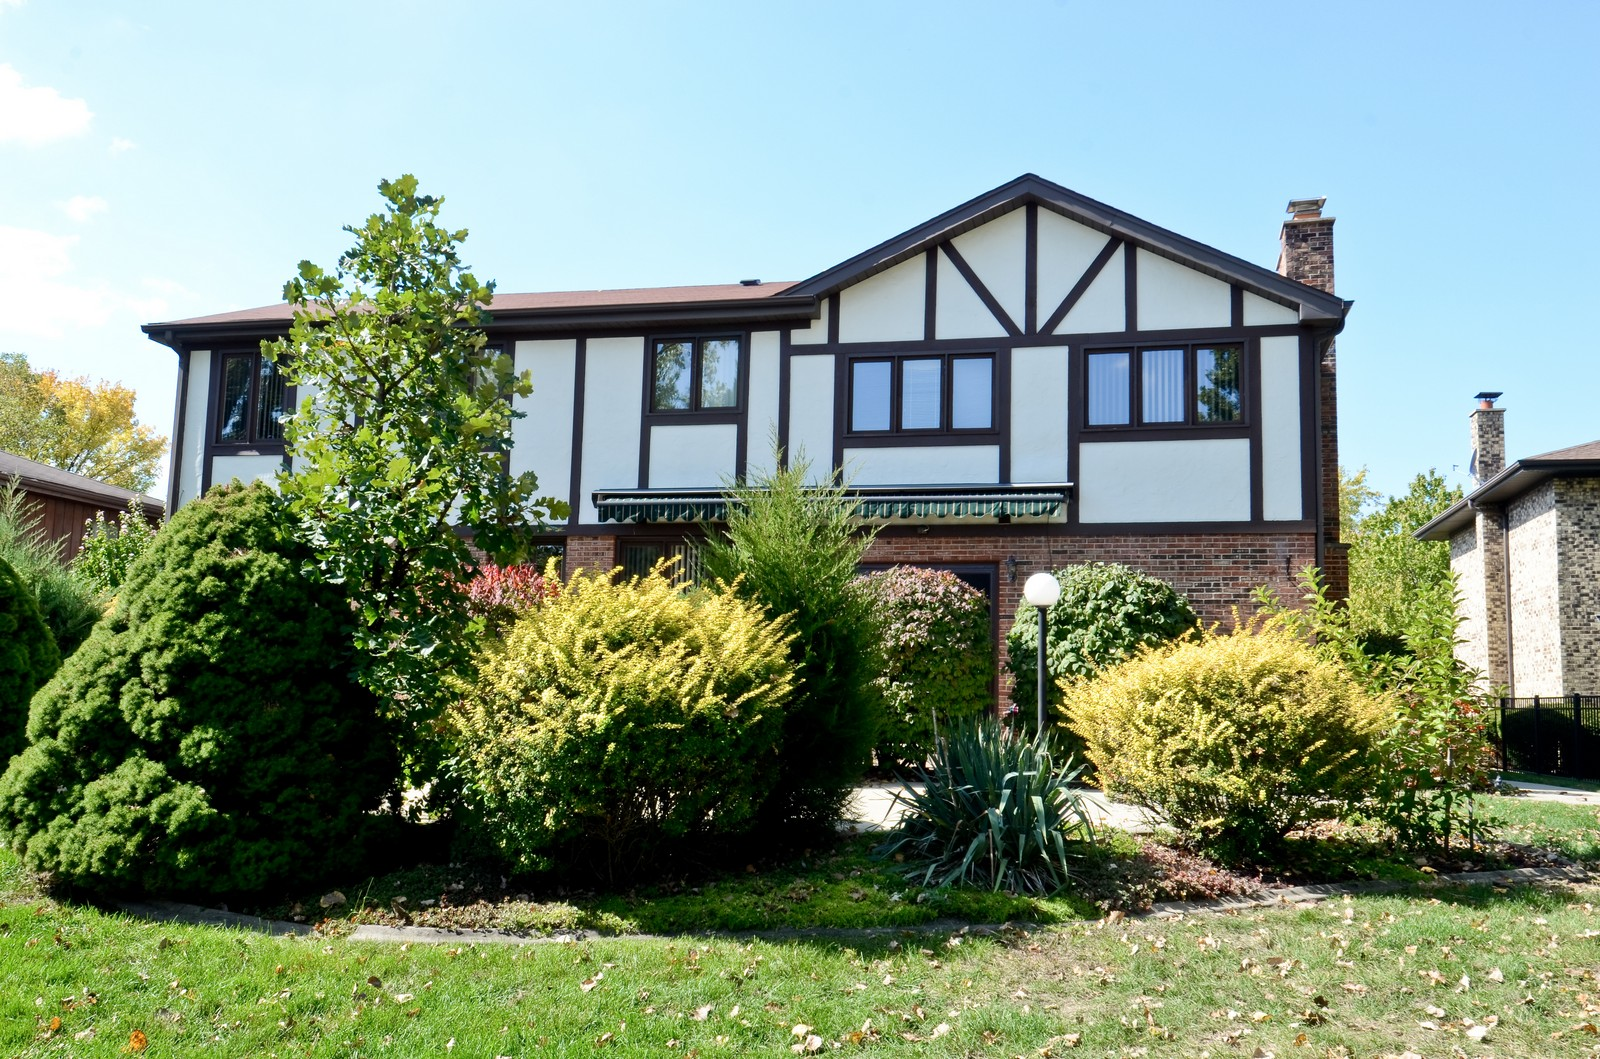 Real Estate Photography - 367 S Edgewood, Wood Dale, IL, 60191 - Rear View